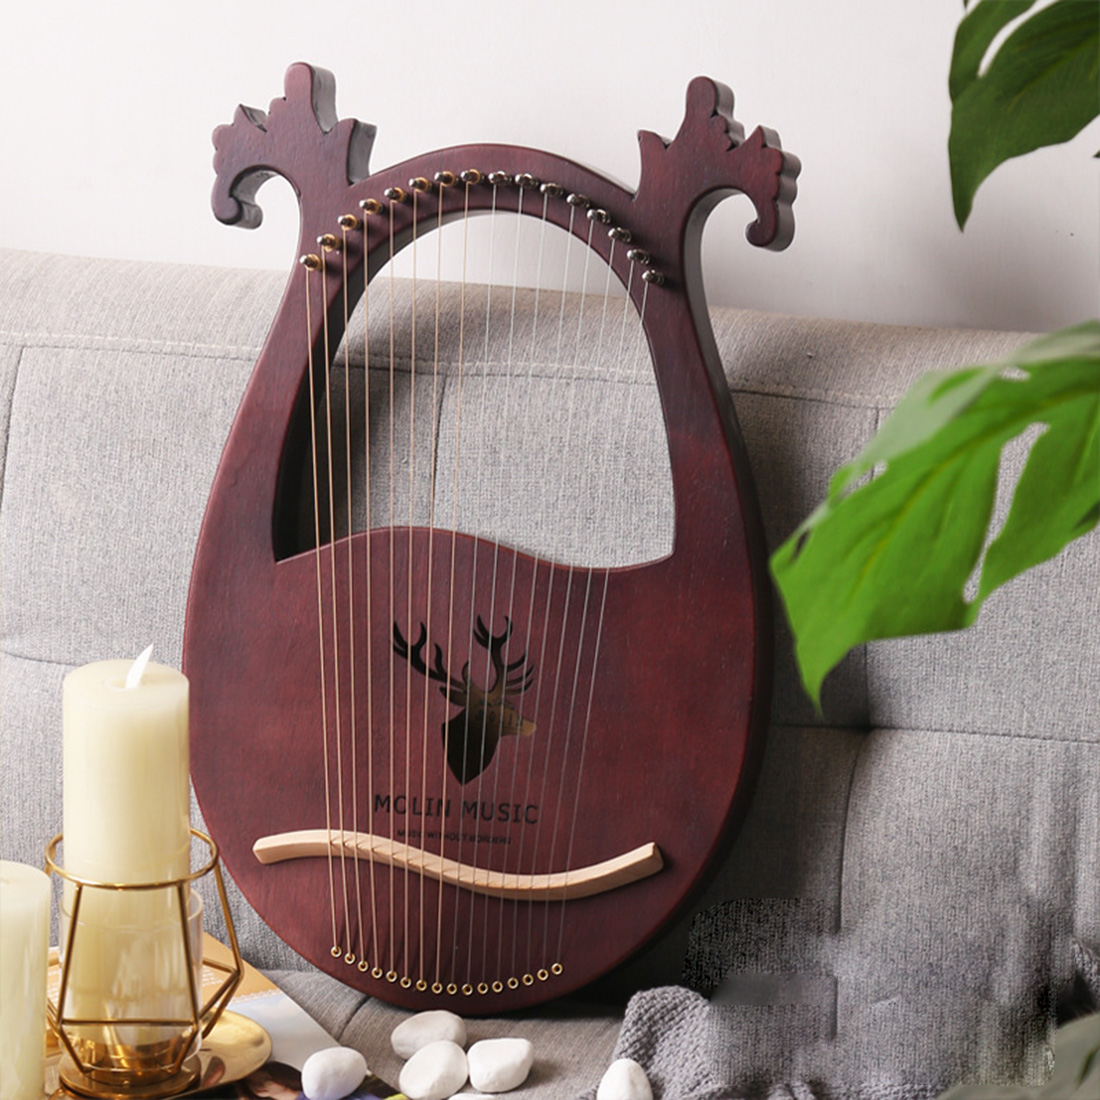 16 Strings Solid Wood Lyre Wooden Harp Classical Musical Instruments For Children Gift- Purplish Red Reindeer/Burlywood Reindeer